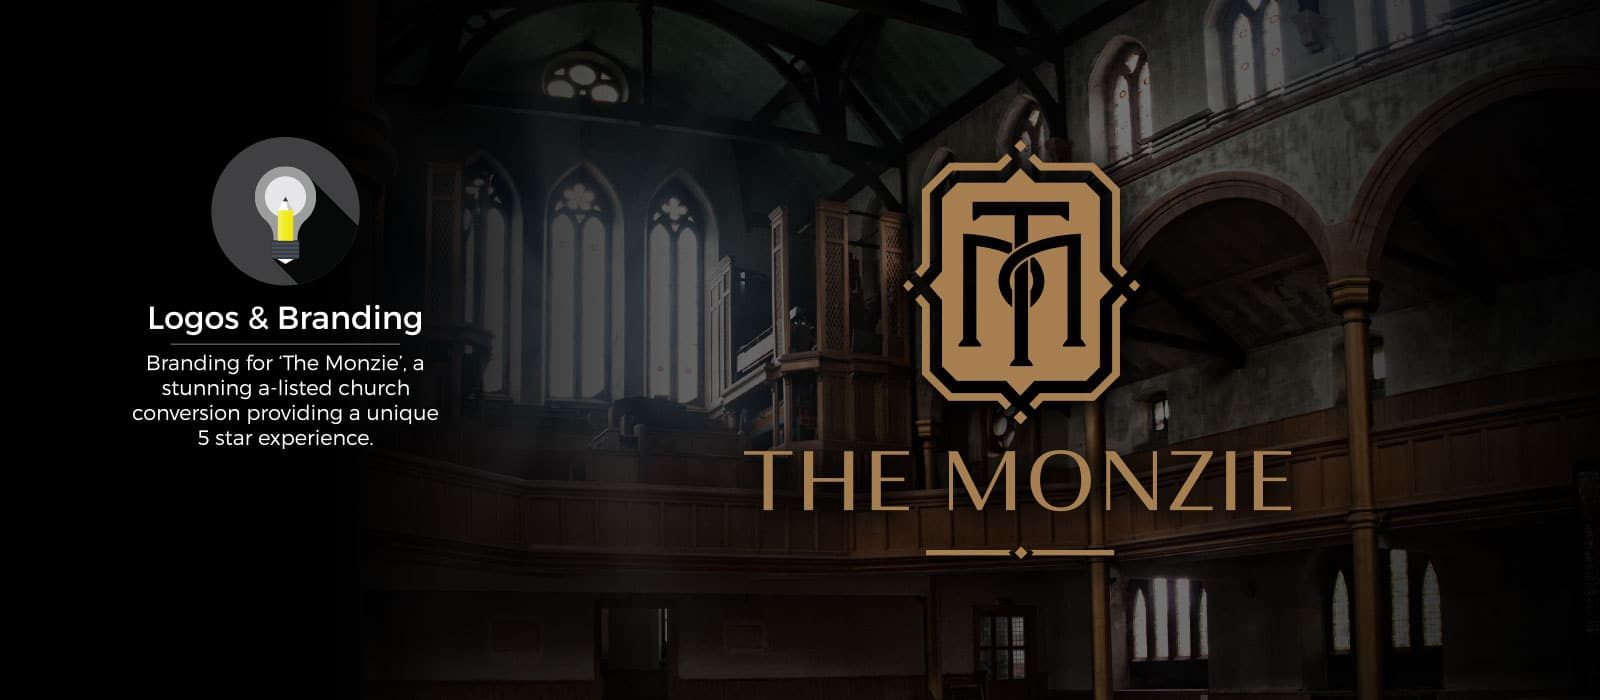 Logo and Branding Design for The Monzie by Mind's I Graphic Design